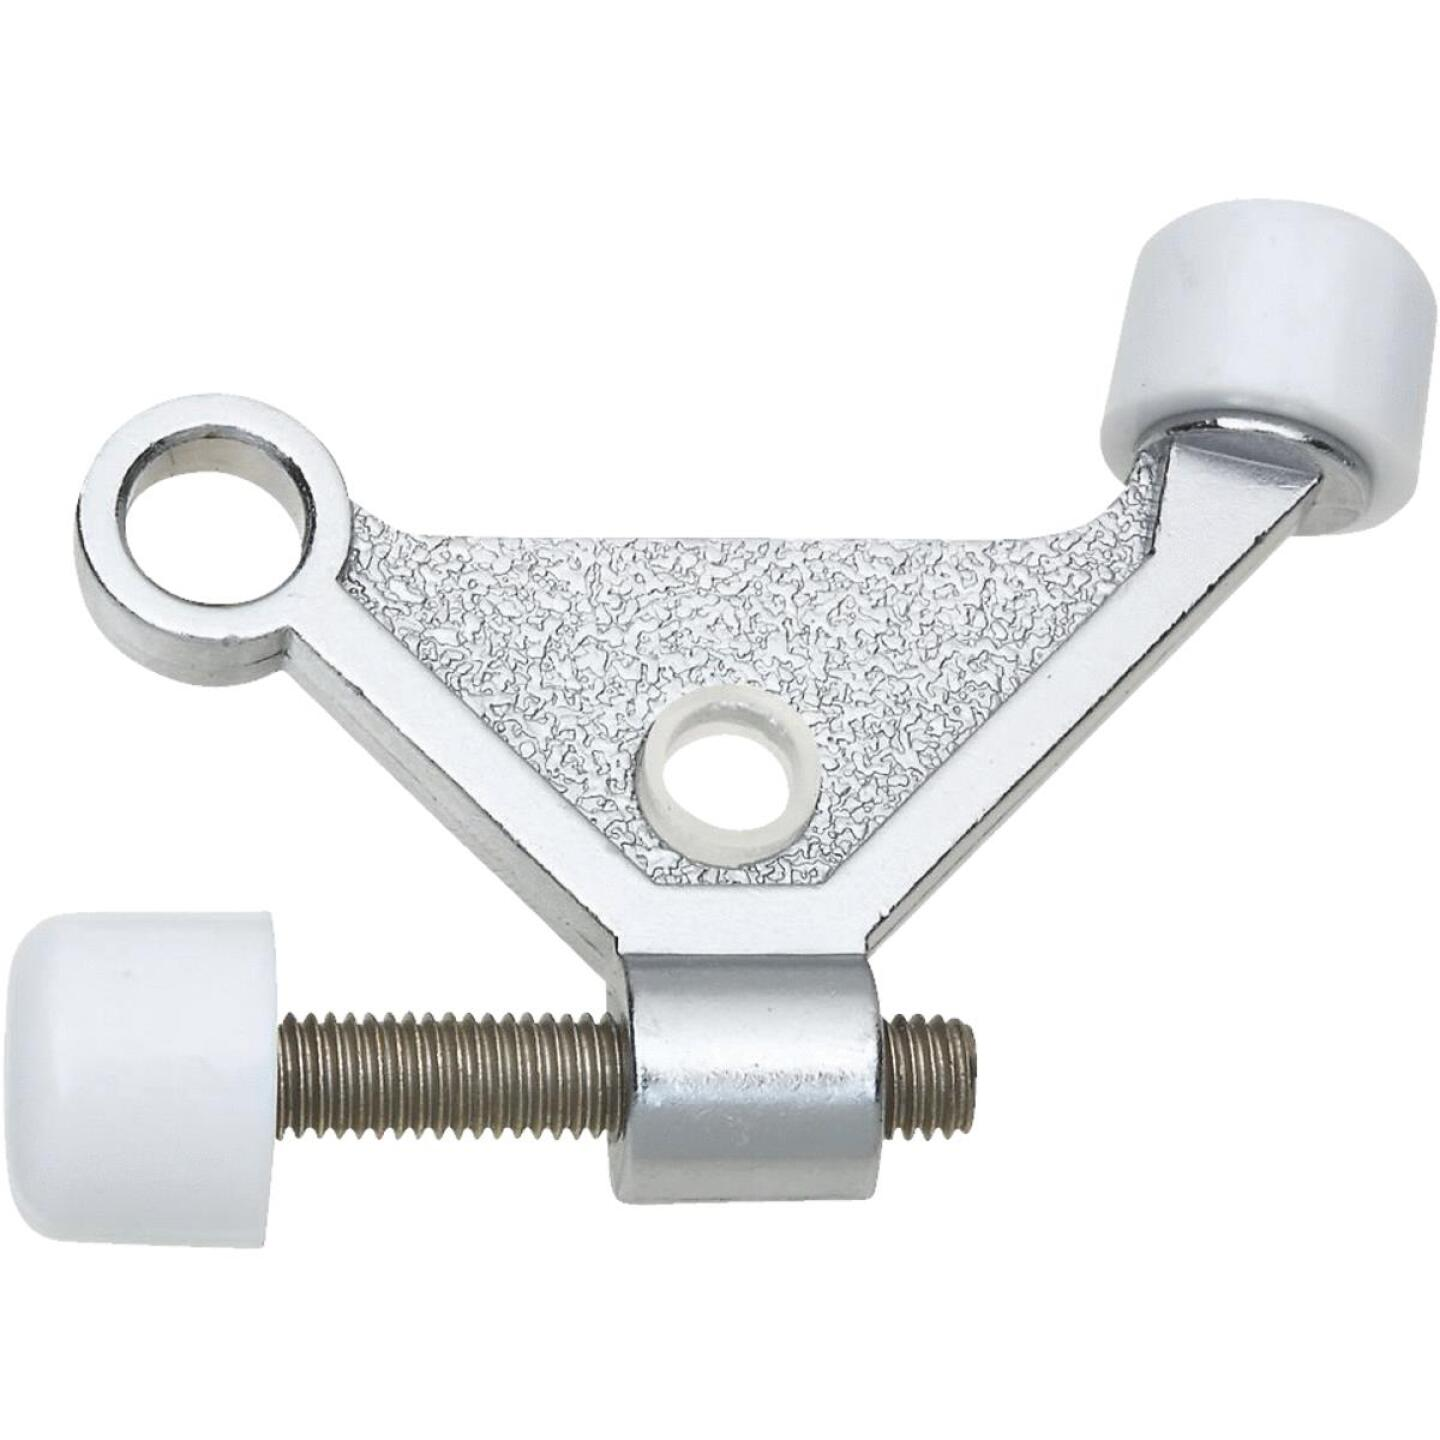 National Satin Chrome Zinc Hinge Pin Door Stop Image 1